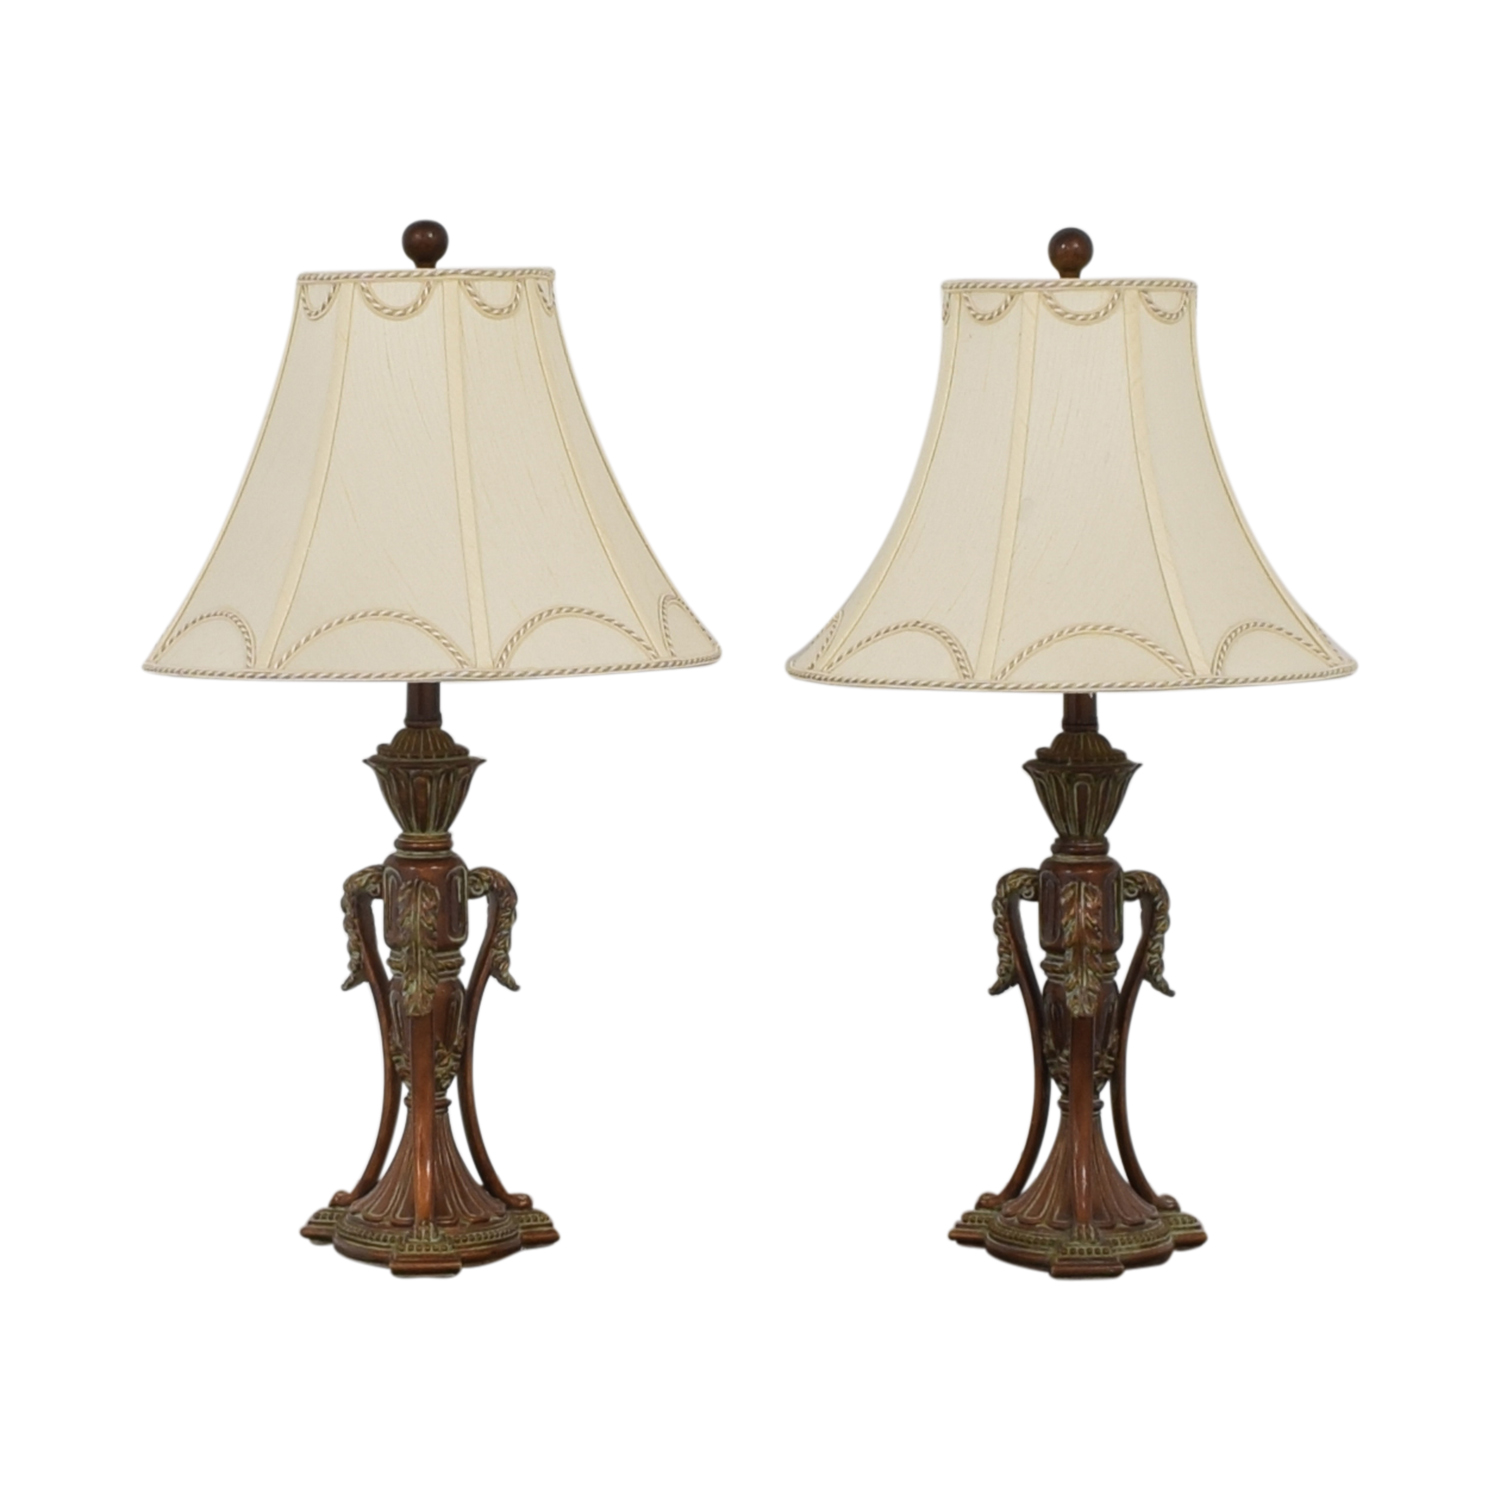 Cambridge Table Lamps on sale